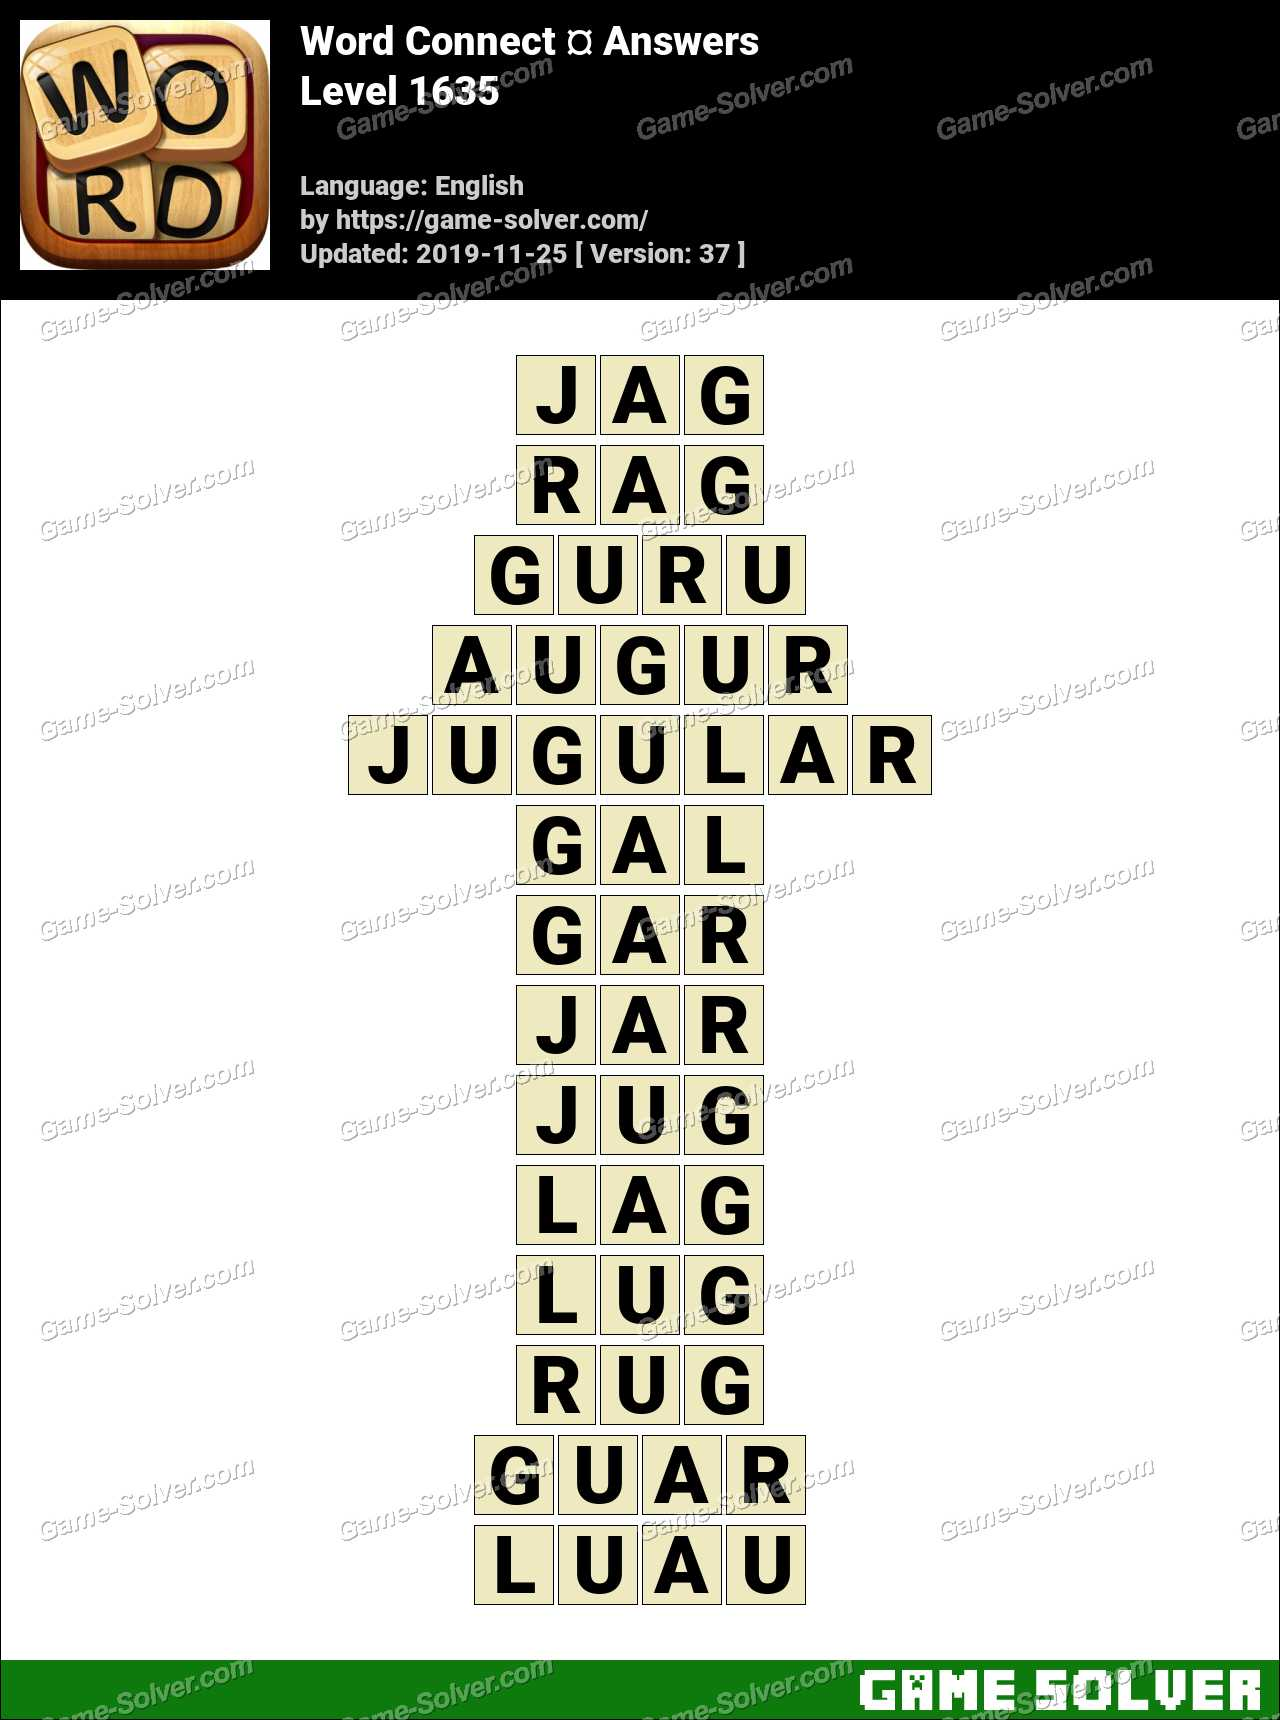 Word Connect Level 1635 Answers